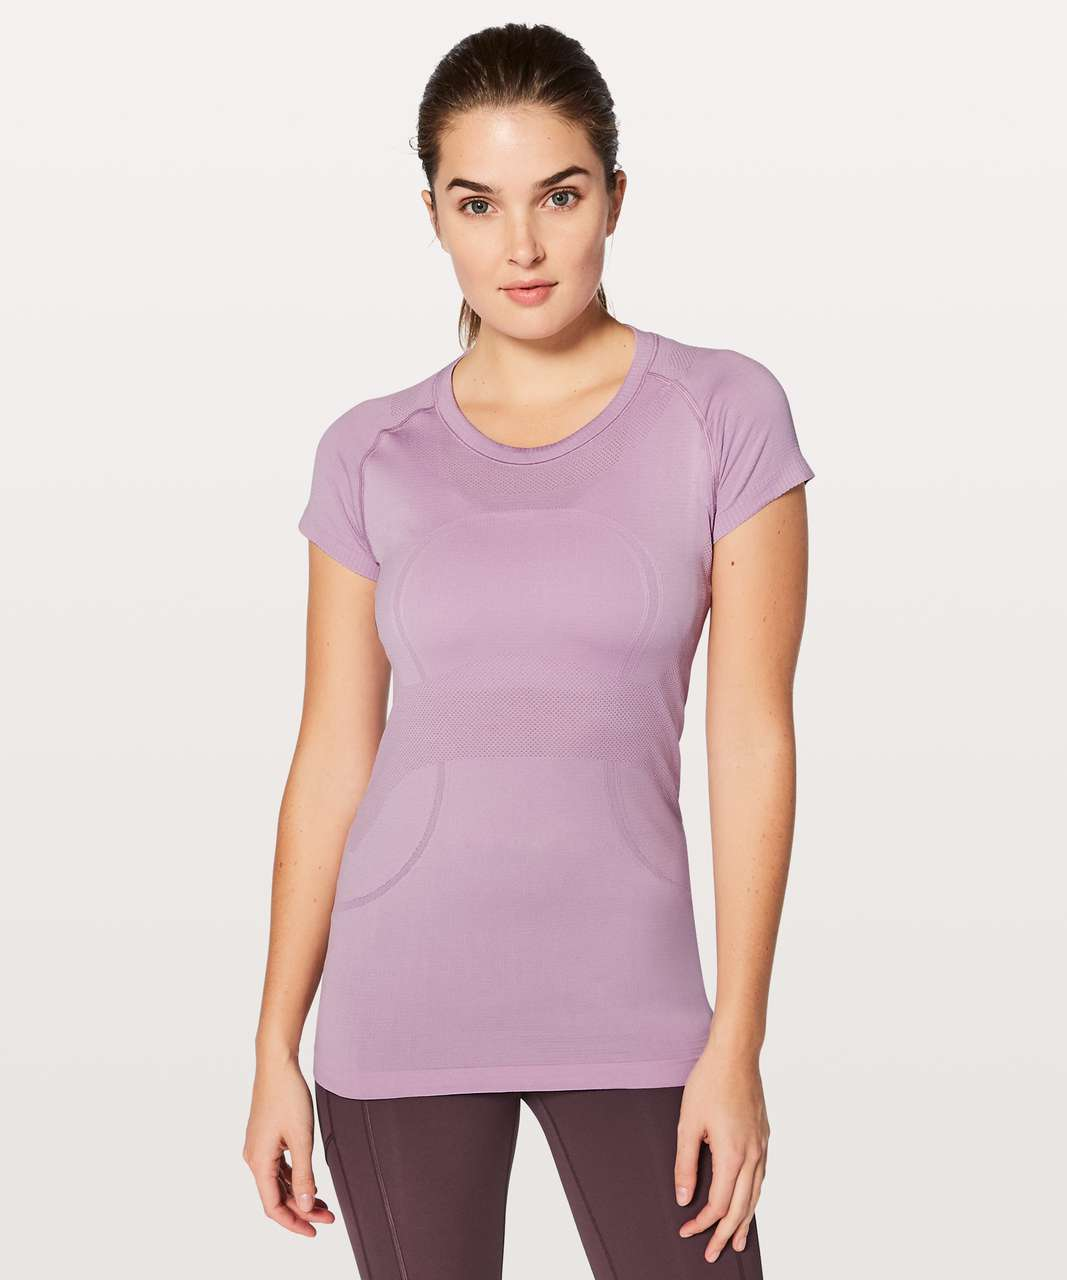 Lululemon Swiftly Tech Short Sleeve Crew - Lilac Quartz / Lilac Quartz